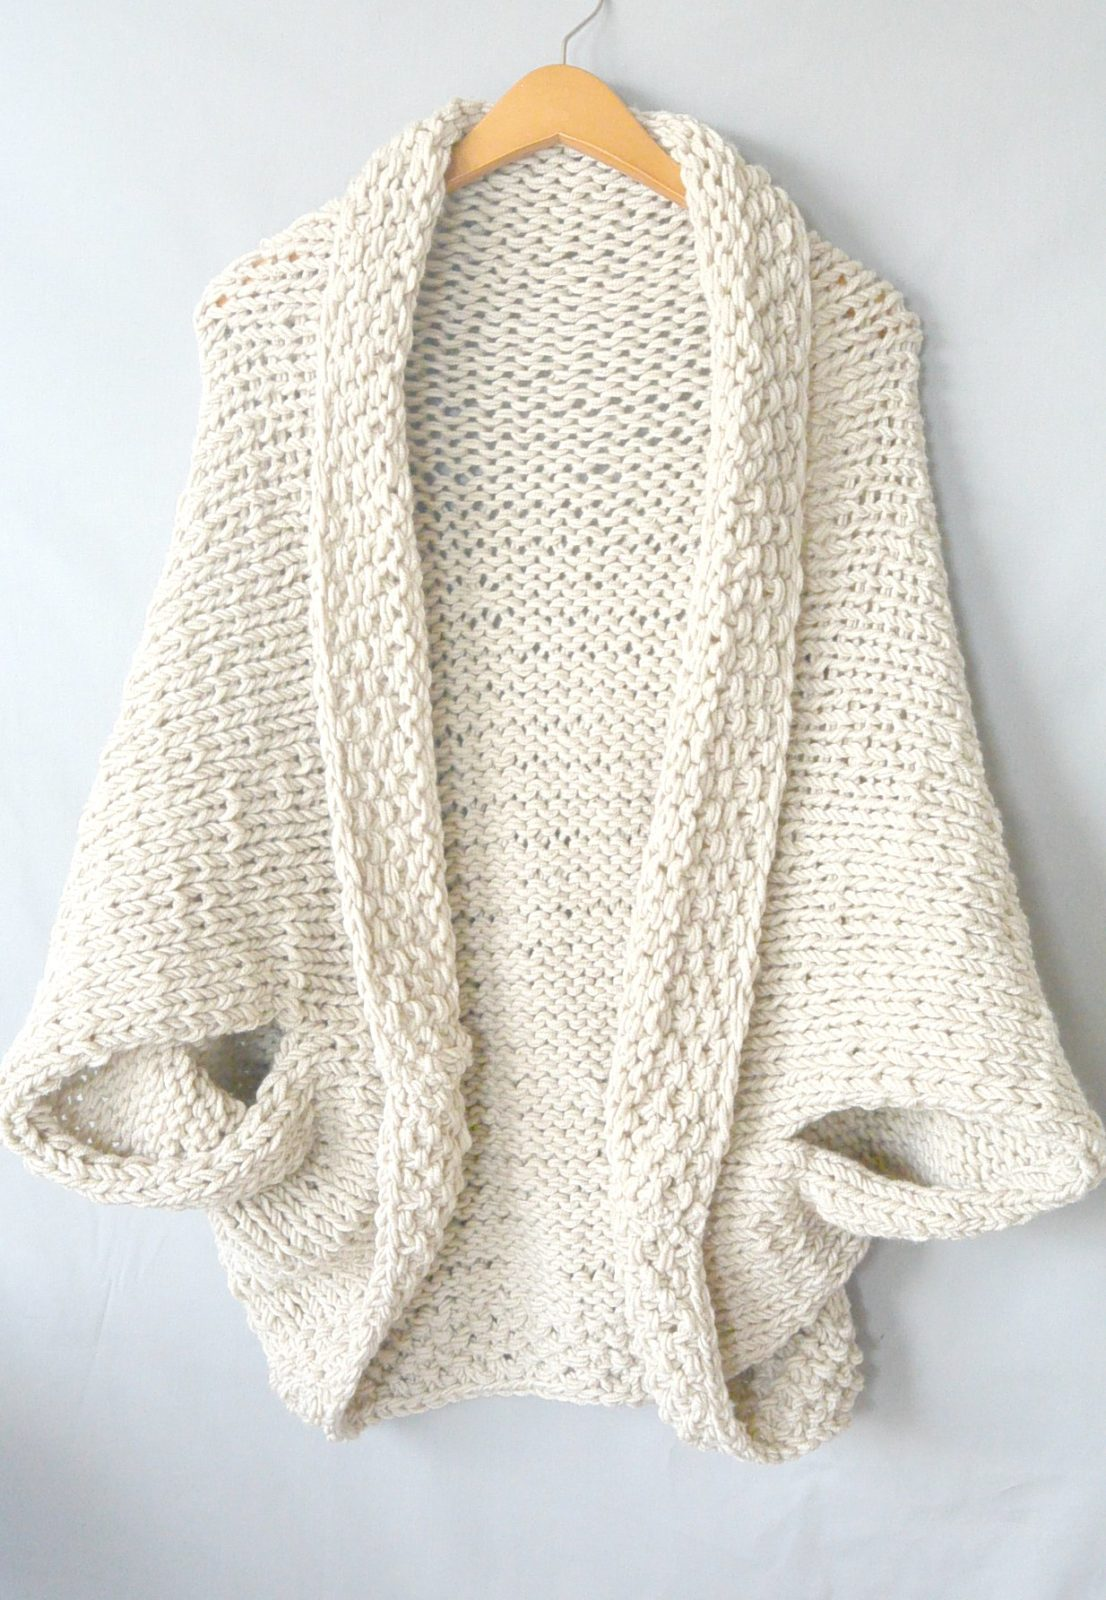 Easy Knit Blanket How To : Easy Knit Blanket Sweater Pattern   Mama In A Stitch